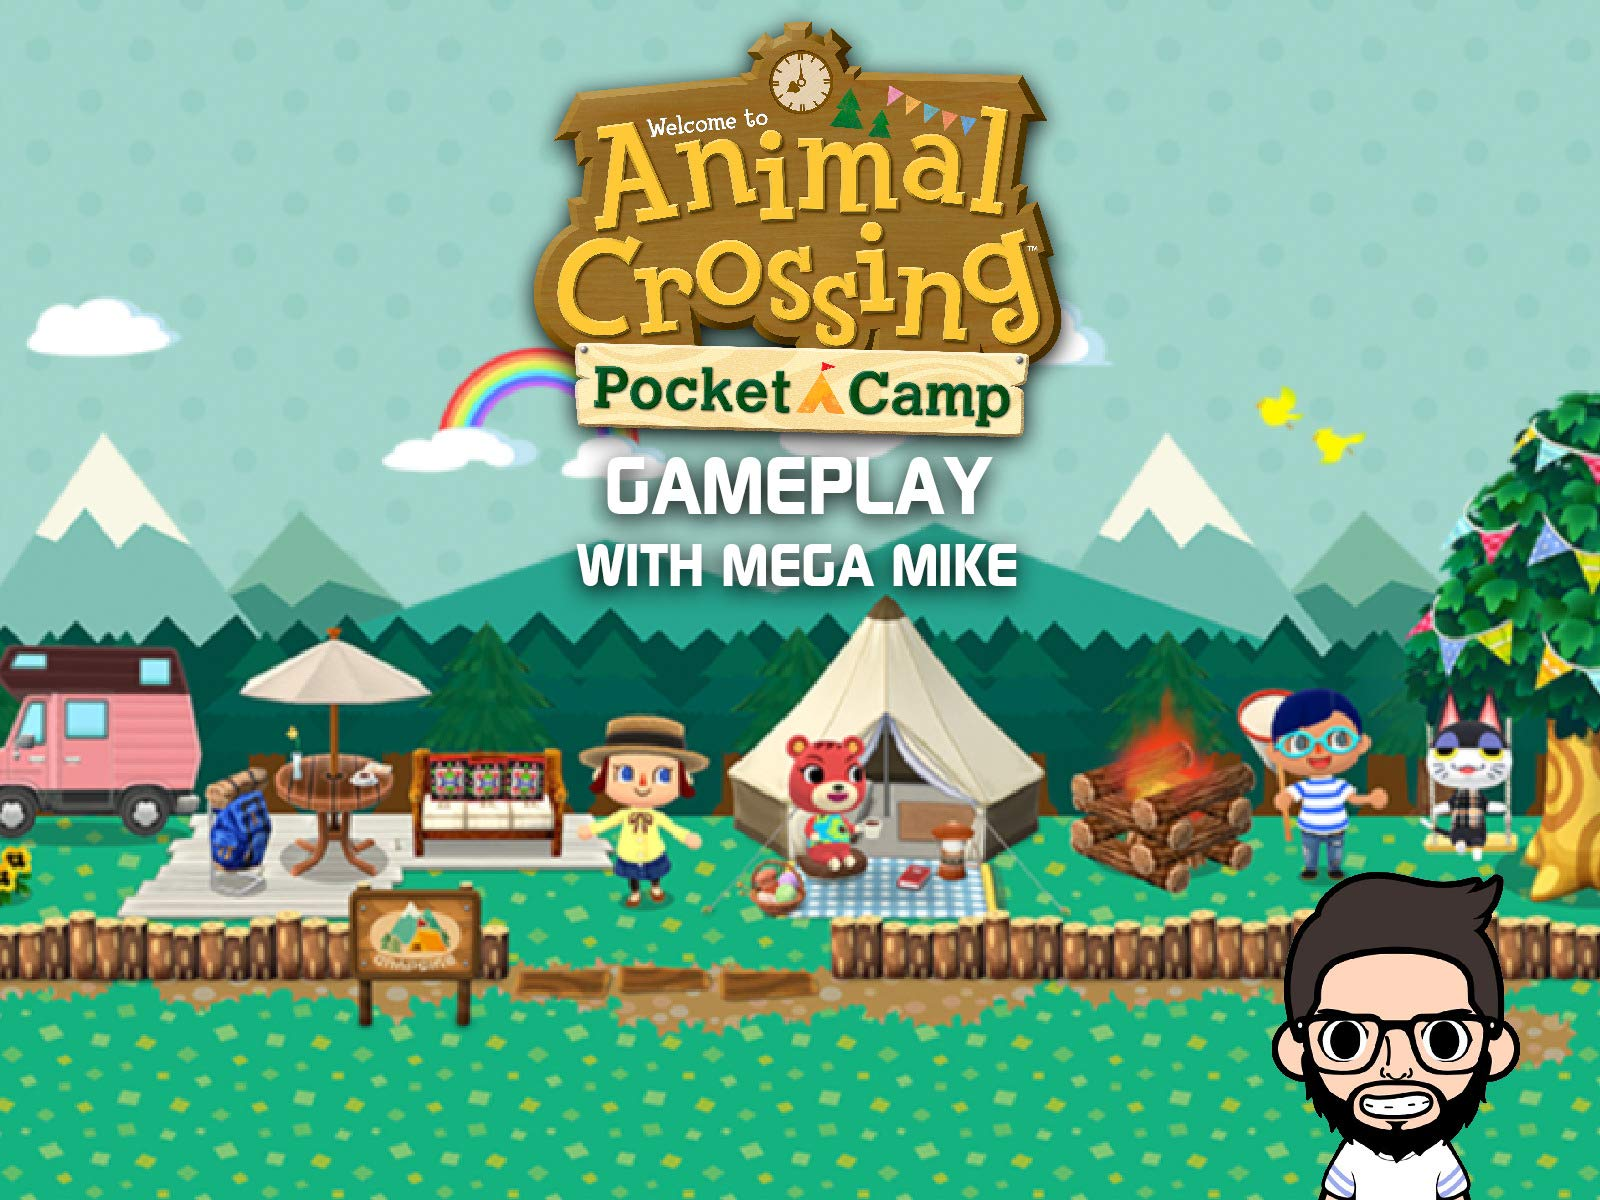 Animal Crossing Pocket Camp Gameplay With Mega Mike